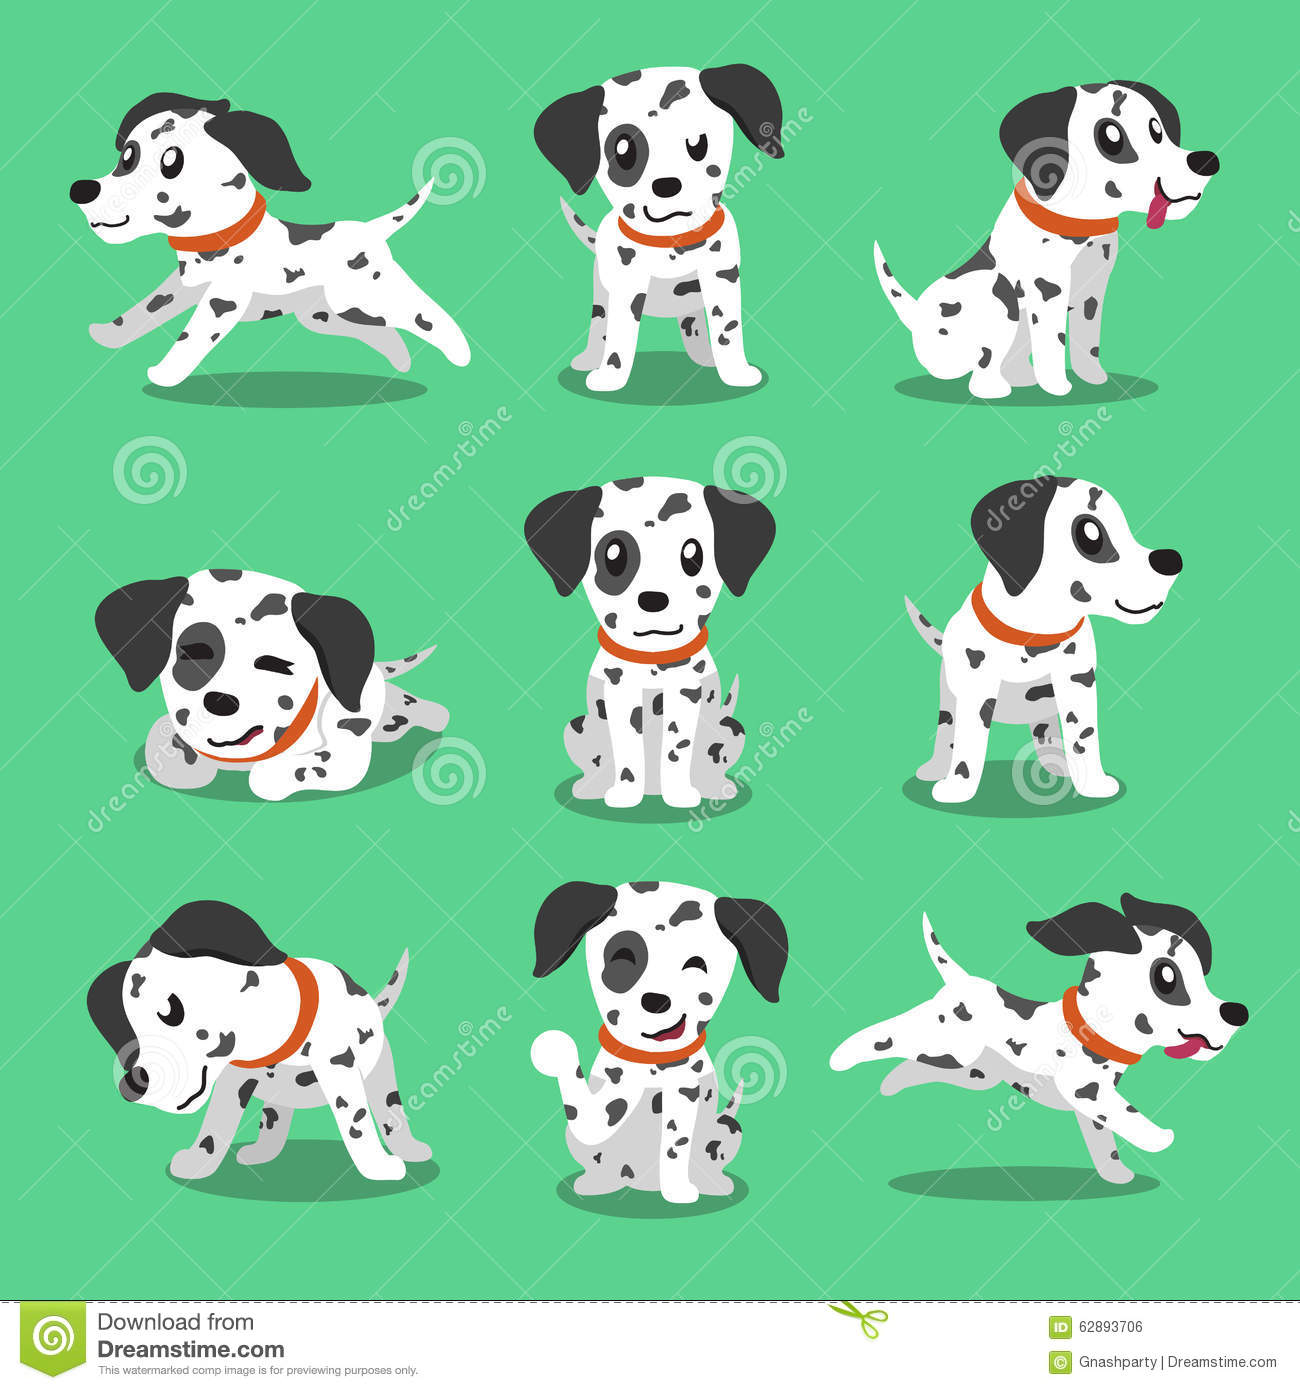 Cartoon Pictures Of Dalmatian Dogs